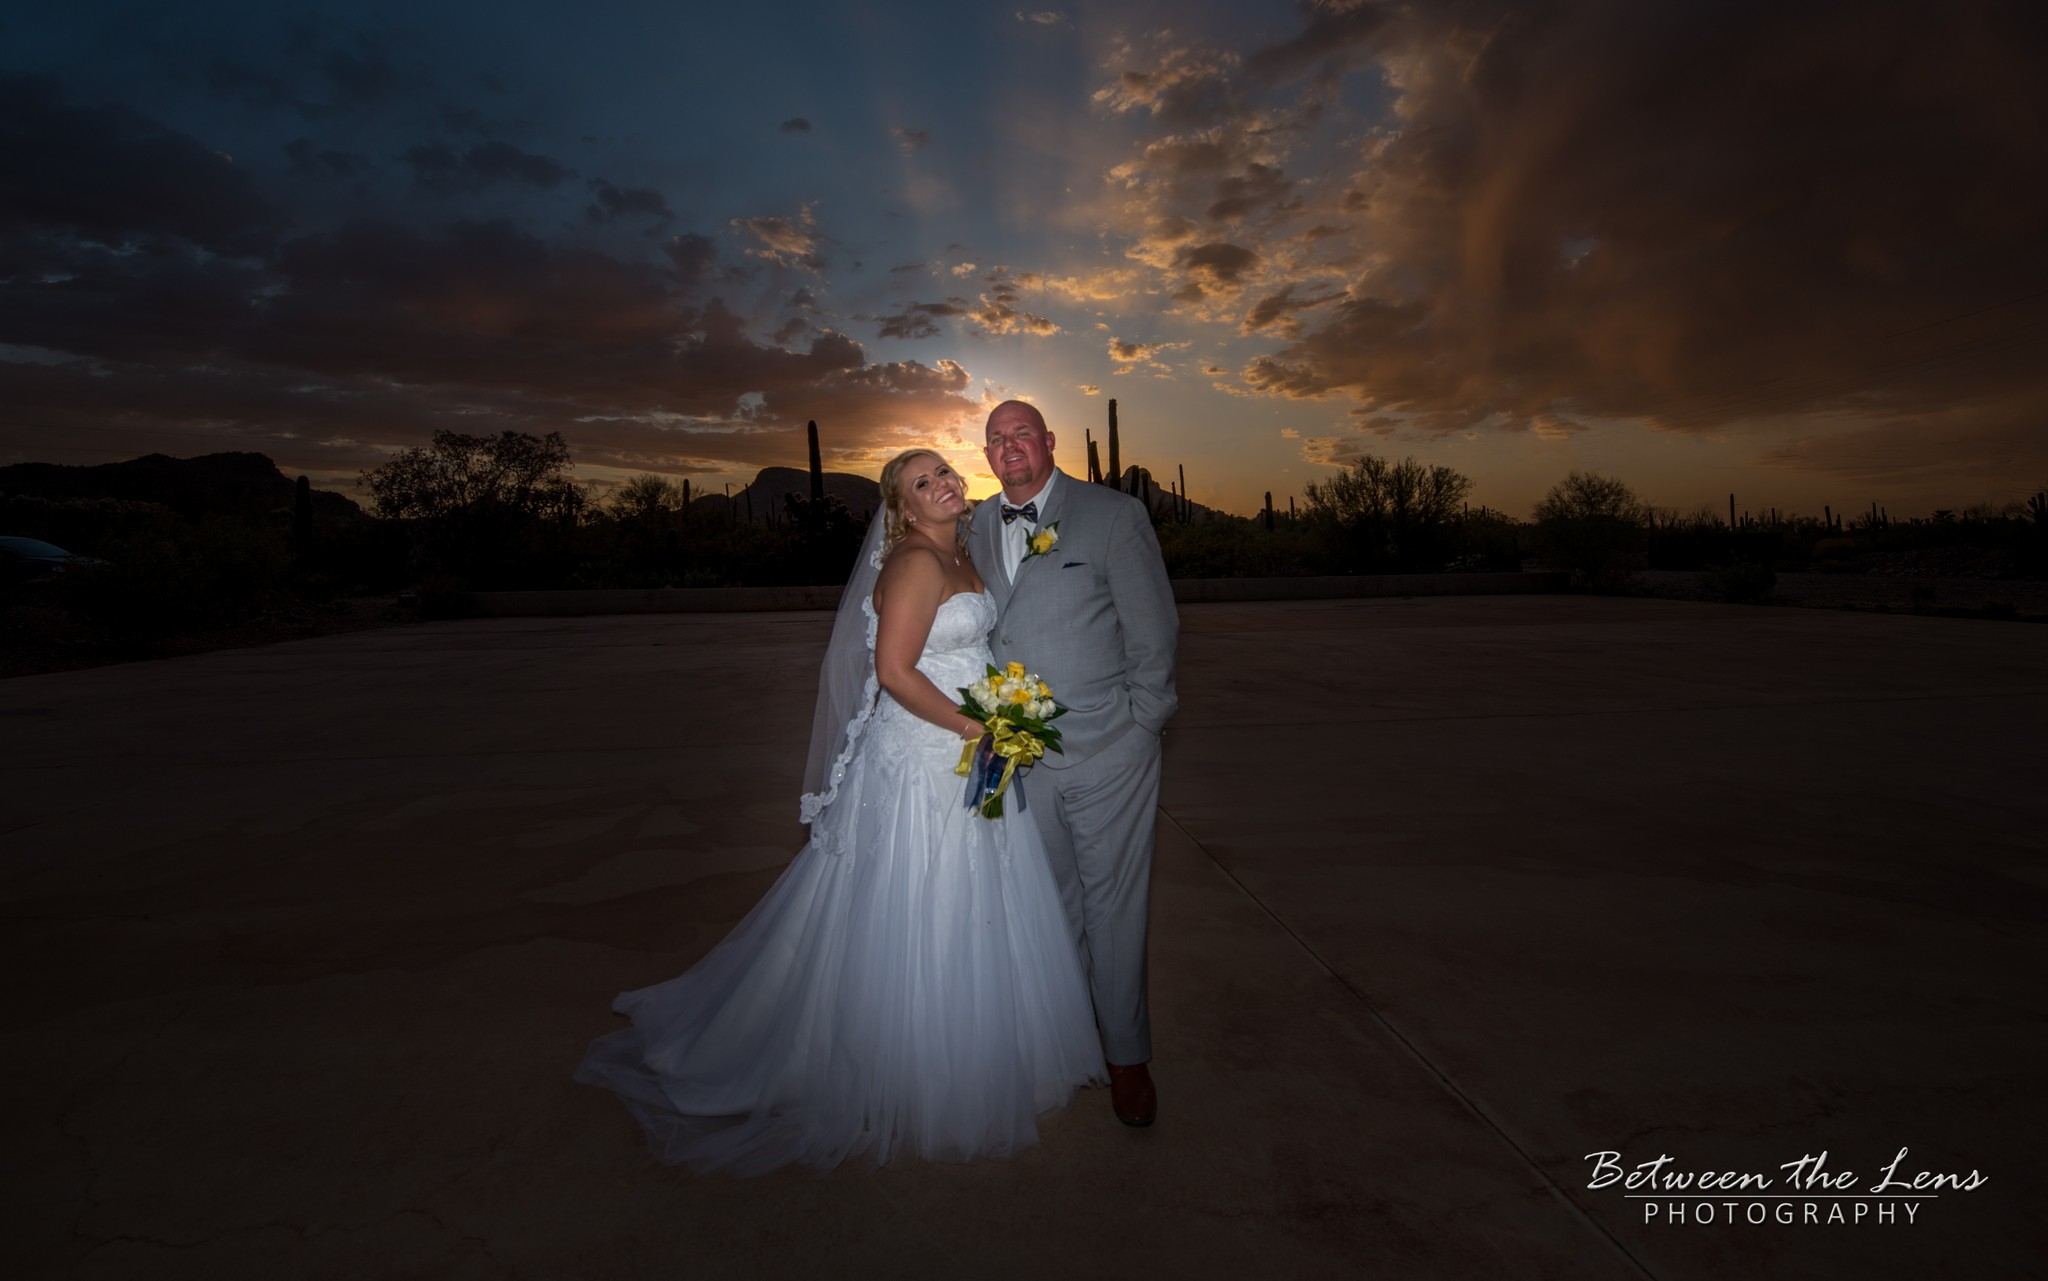 Couple During a Desert Sunset